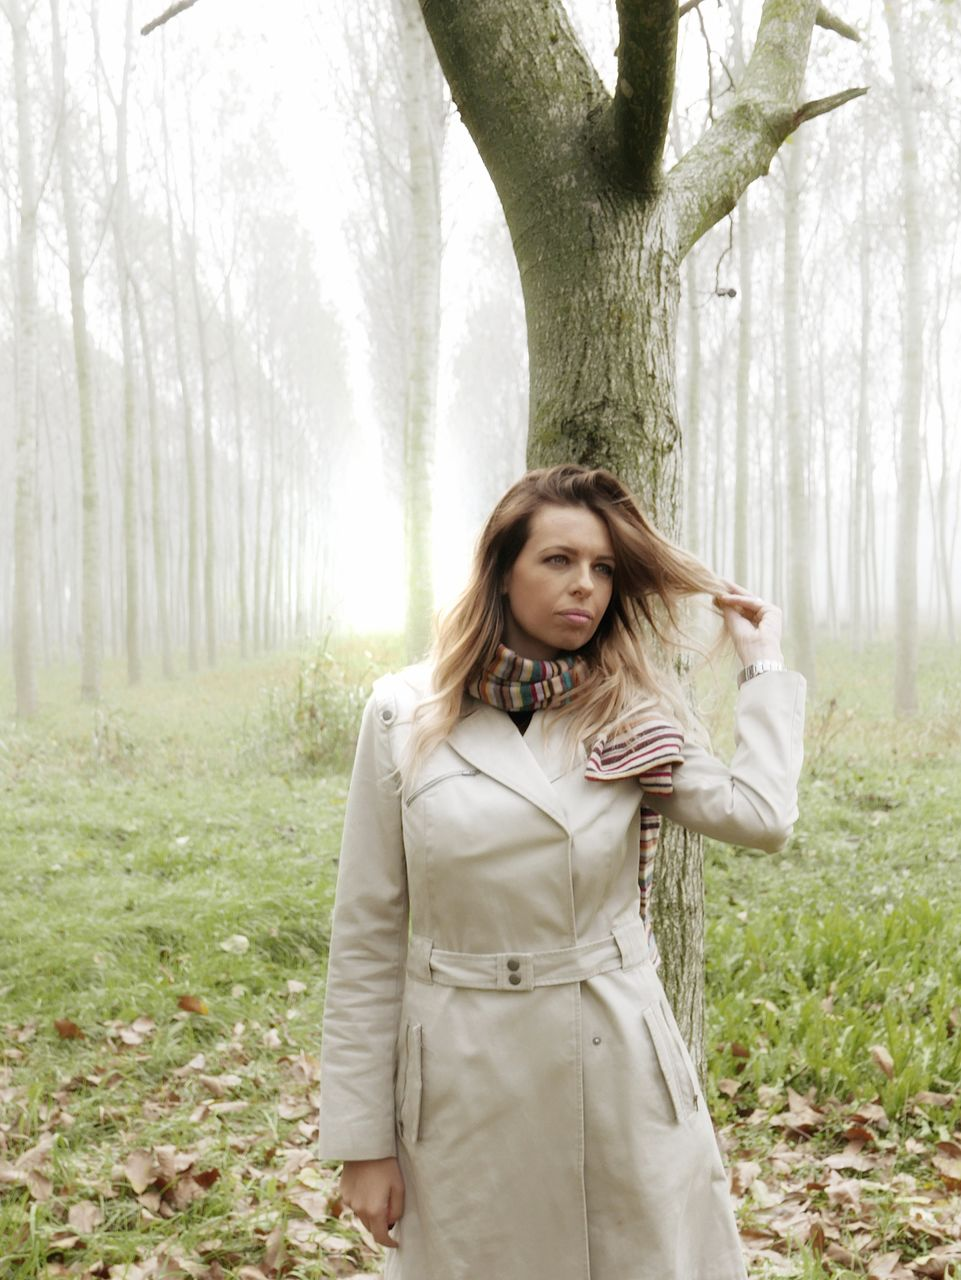 tree, young adult, one person, tree trunk, real people, young women, nature, three quarter length, front view, casual clothing, standing, leisure activity, day, outdoors, lifestyles, beautiful woman, grass, looking at camera, forest, smiling, branch, portrait, happiness, bare tree, people